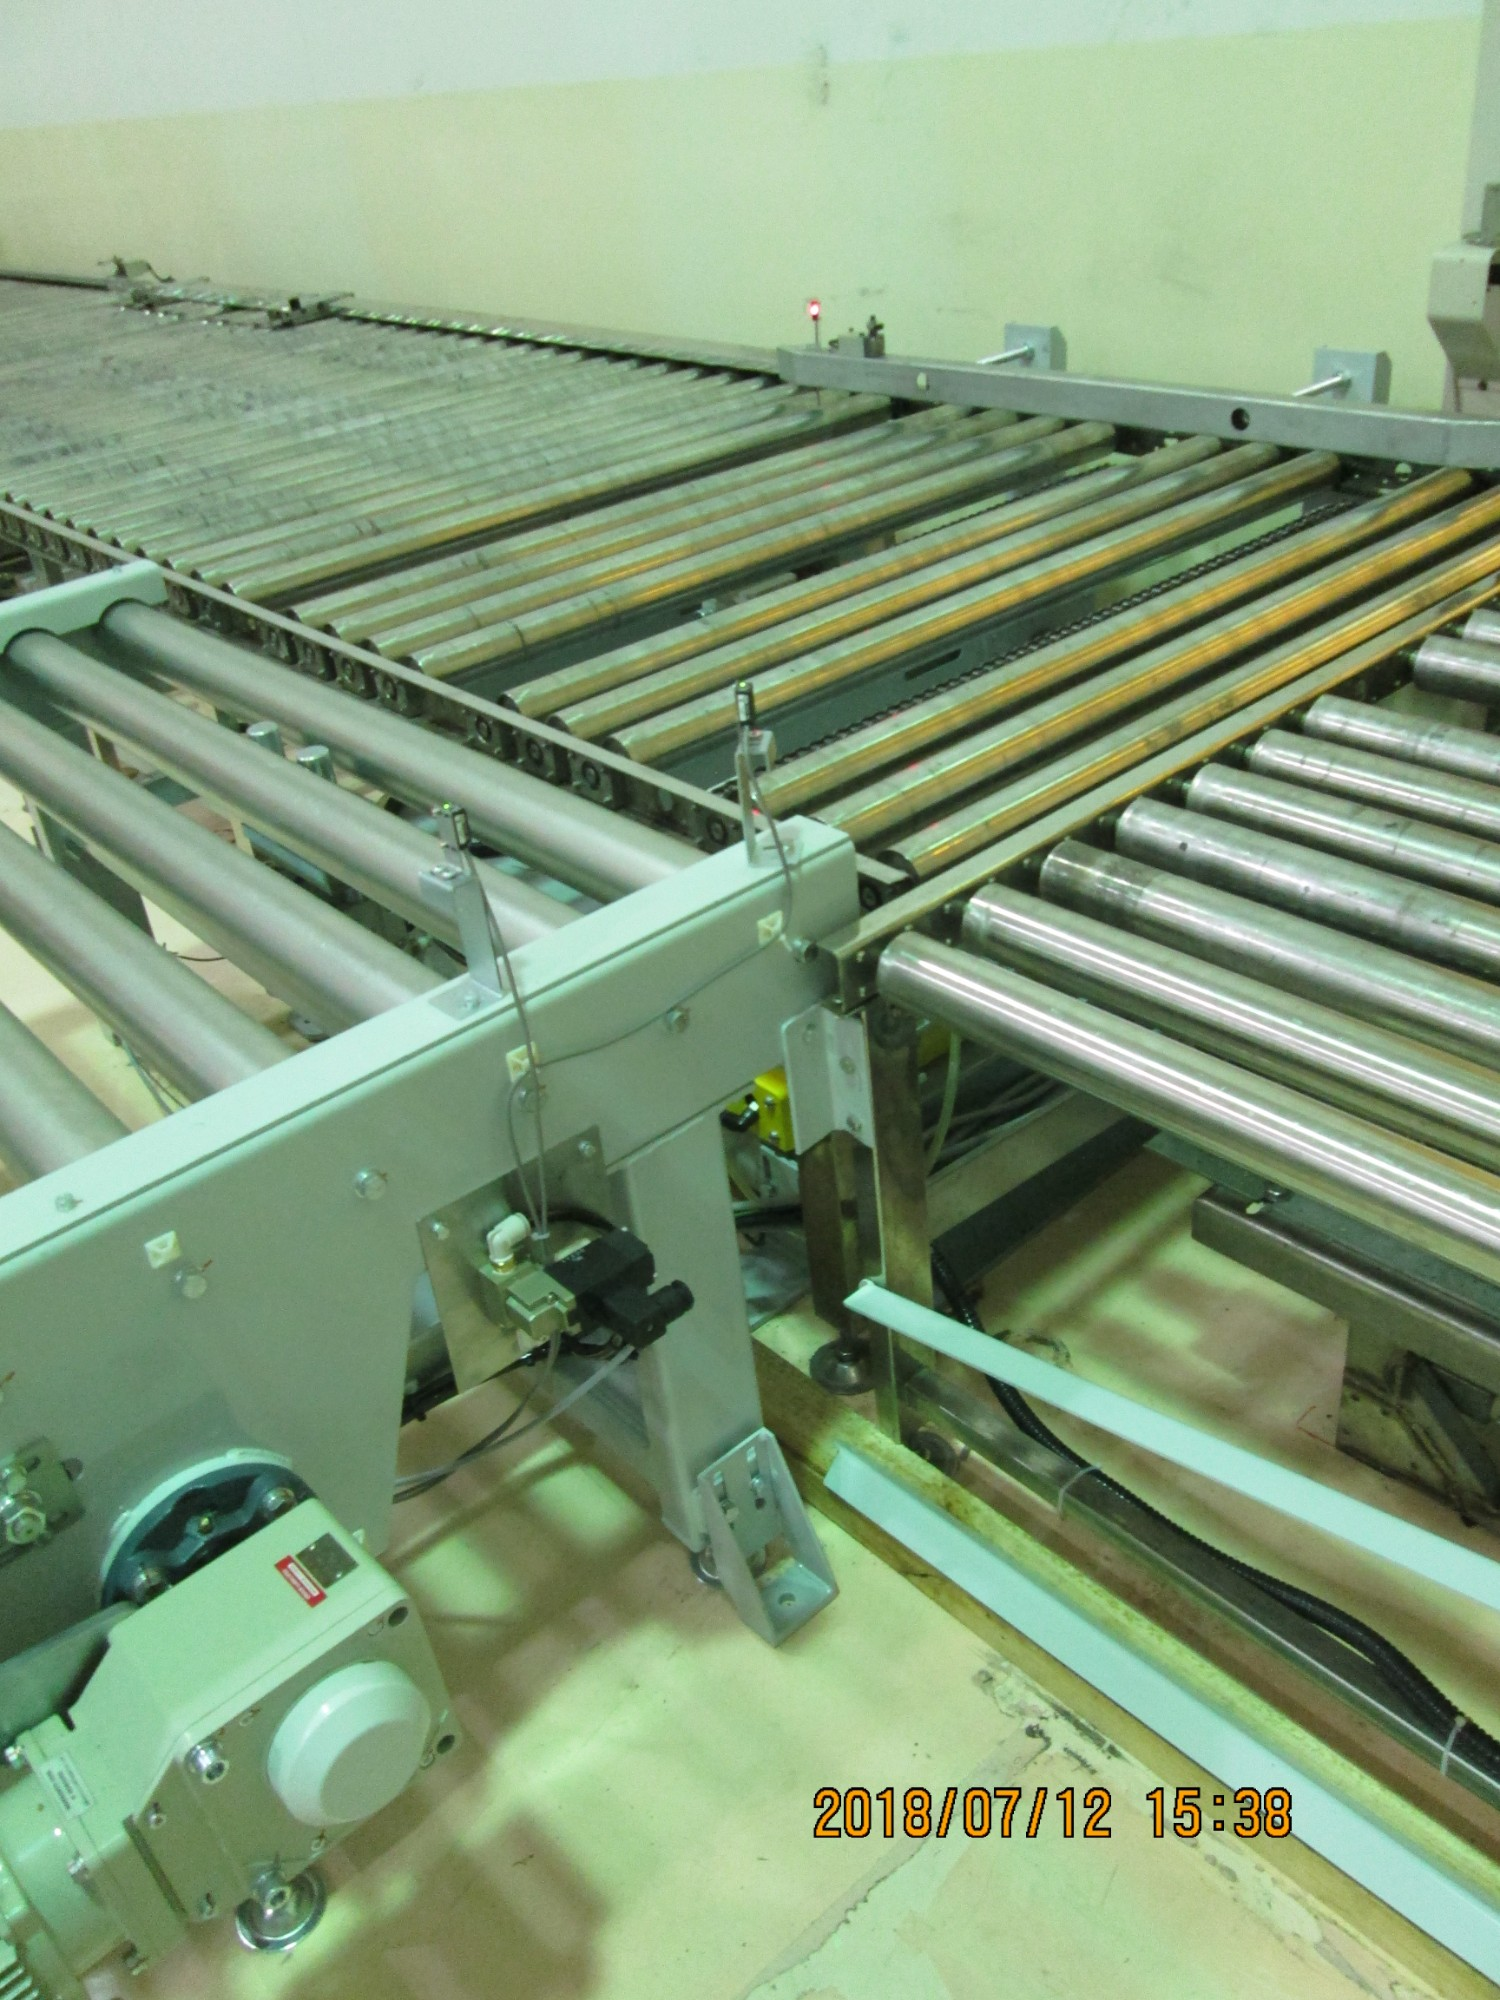 CHAIN CONVEYOR FOR TRANSPORTING PALLETS